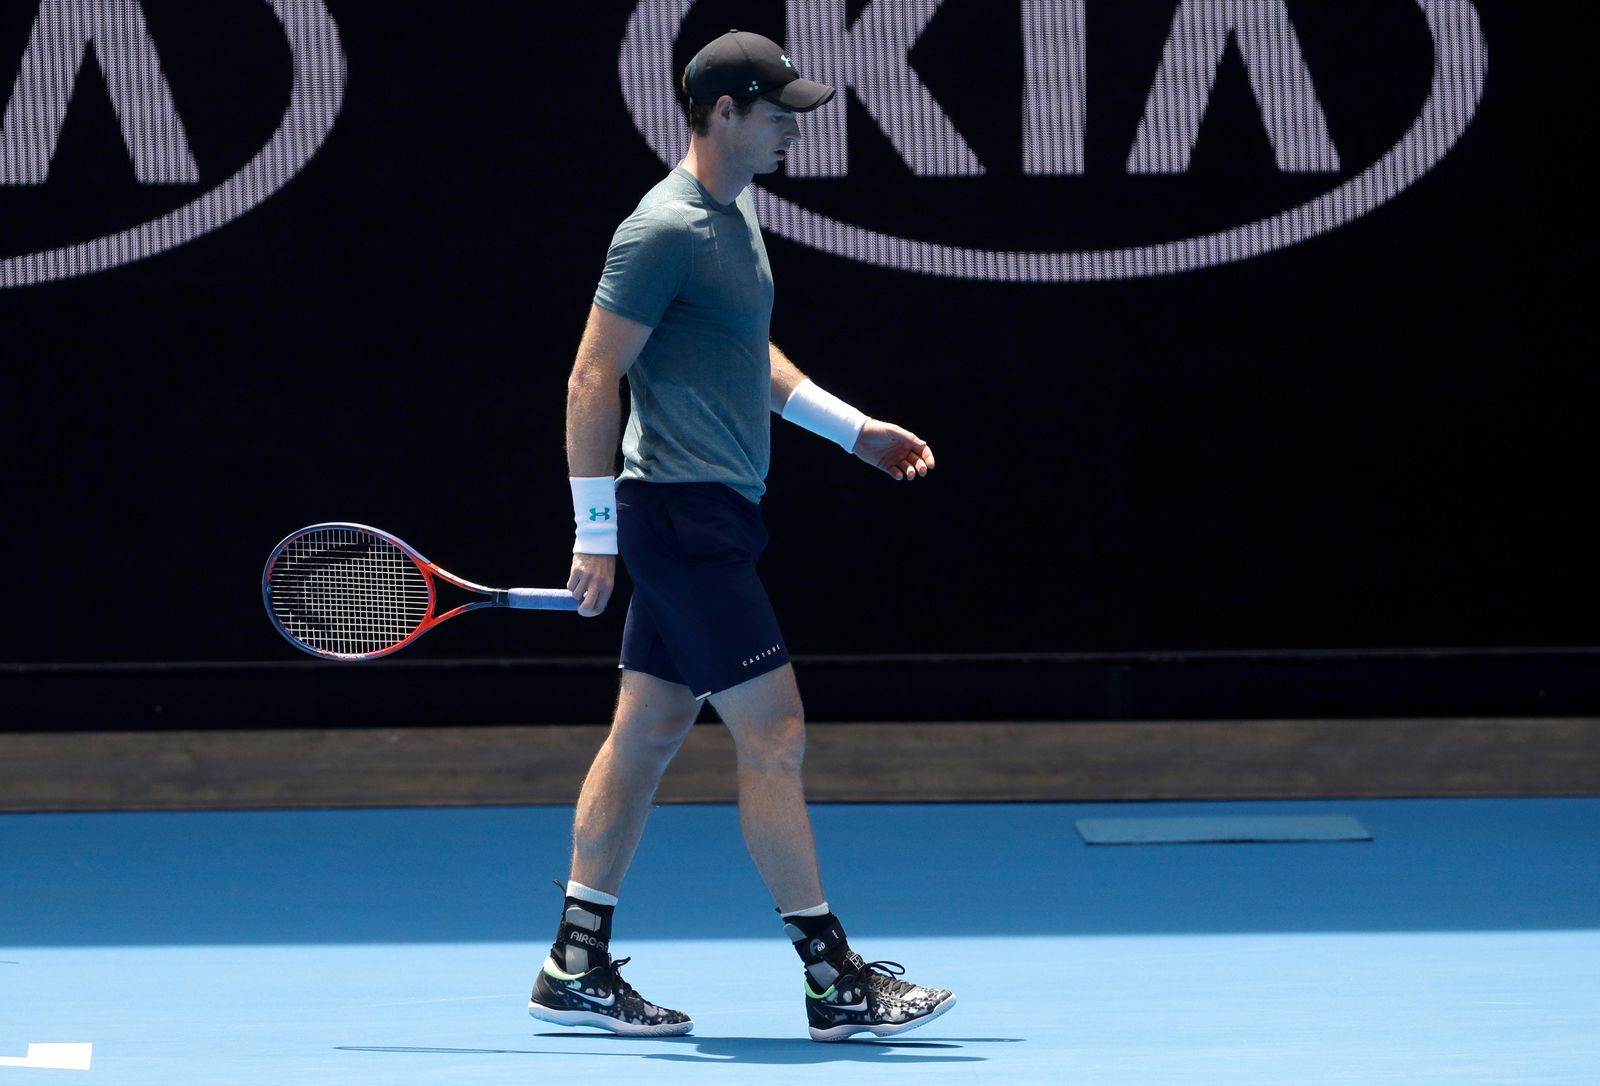 Britain's Andy Murray walks between points during his practice match against Serbia's Novak Djokovic on Margaret Court Arena ahead of the Australian Open tennis championships IN Melbourne, Australia, Thursday, Jan. 10, 2019. (AP Photo/Mark Baker)